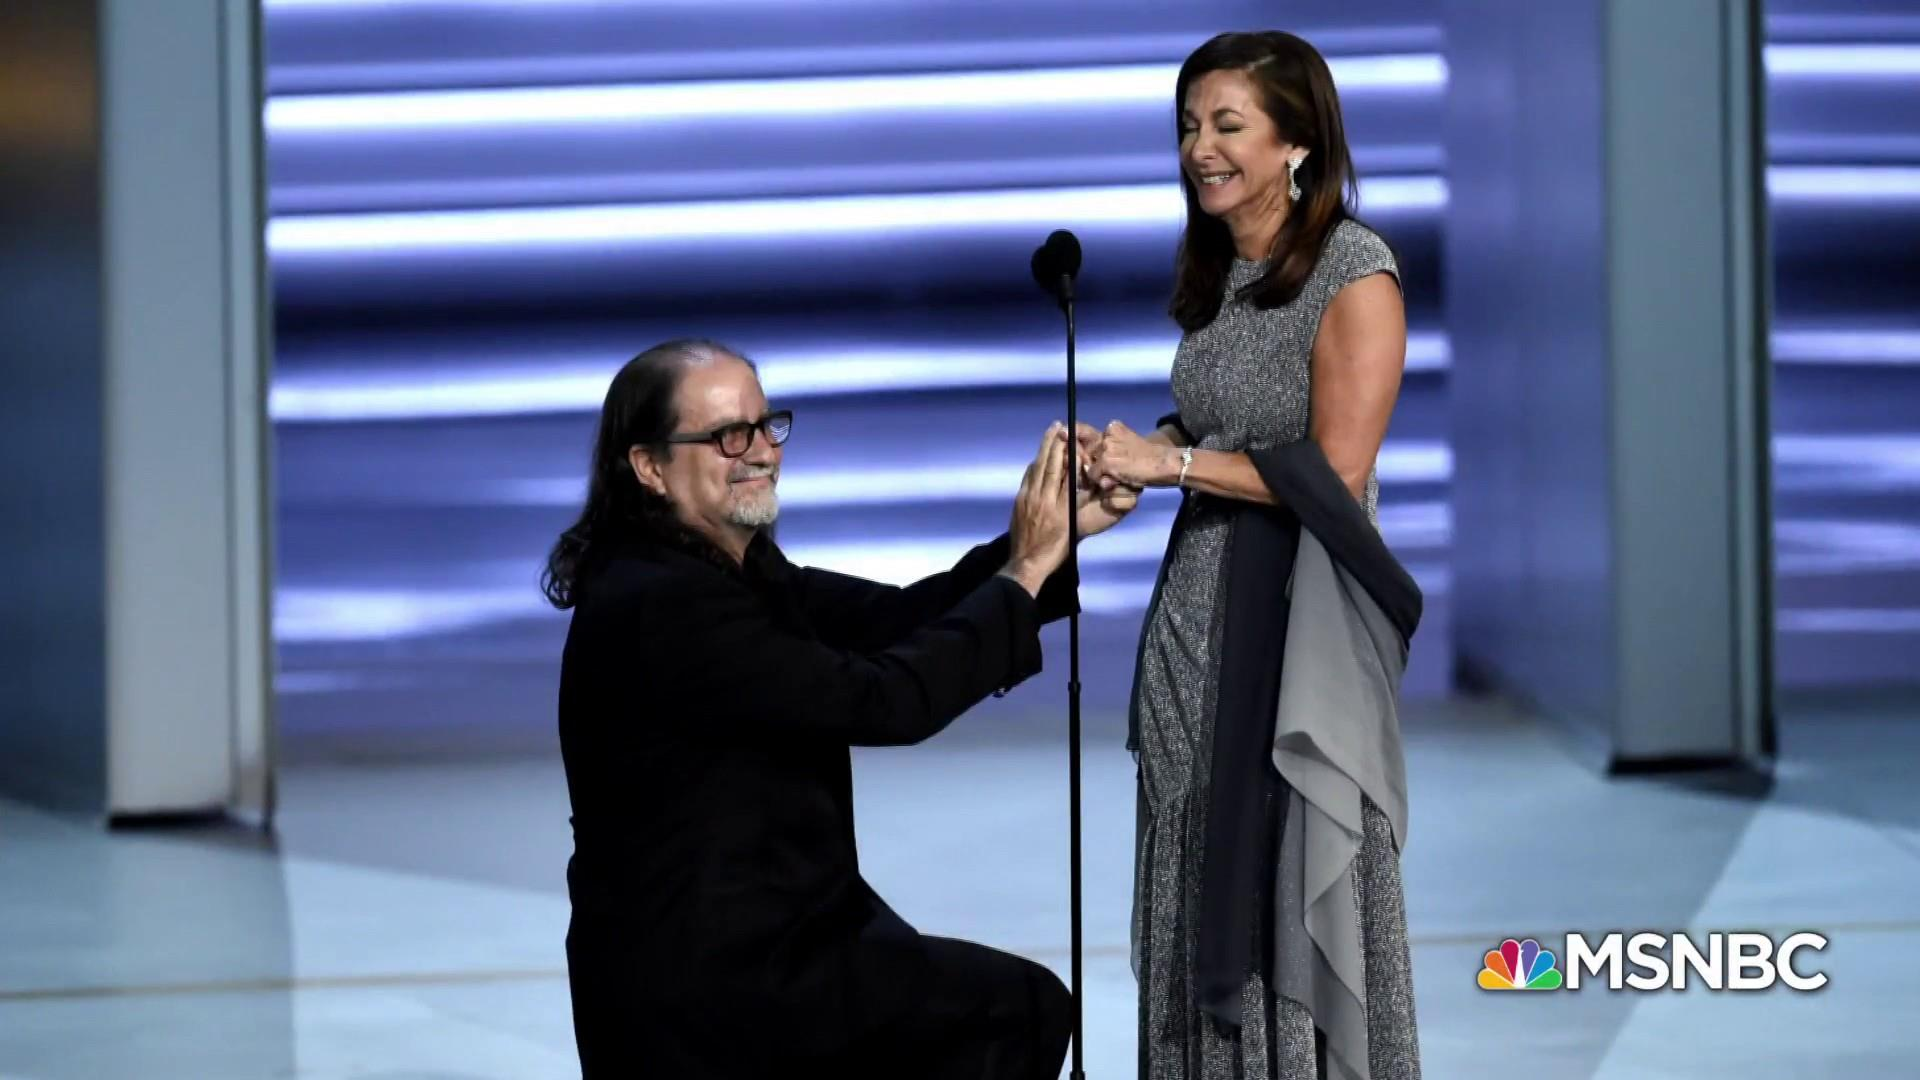 #BIGPICTURE: Glenn Weiss wins best Emmy moment with live proposal